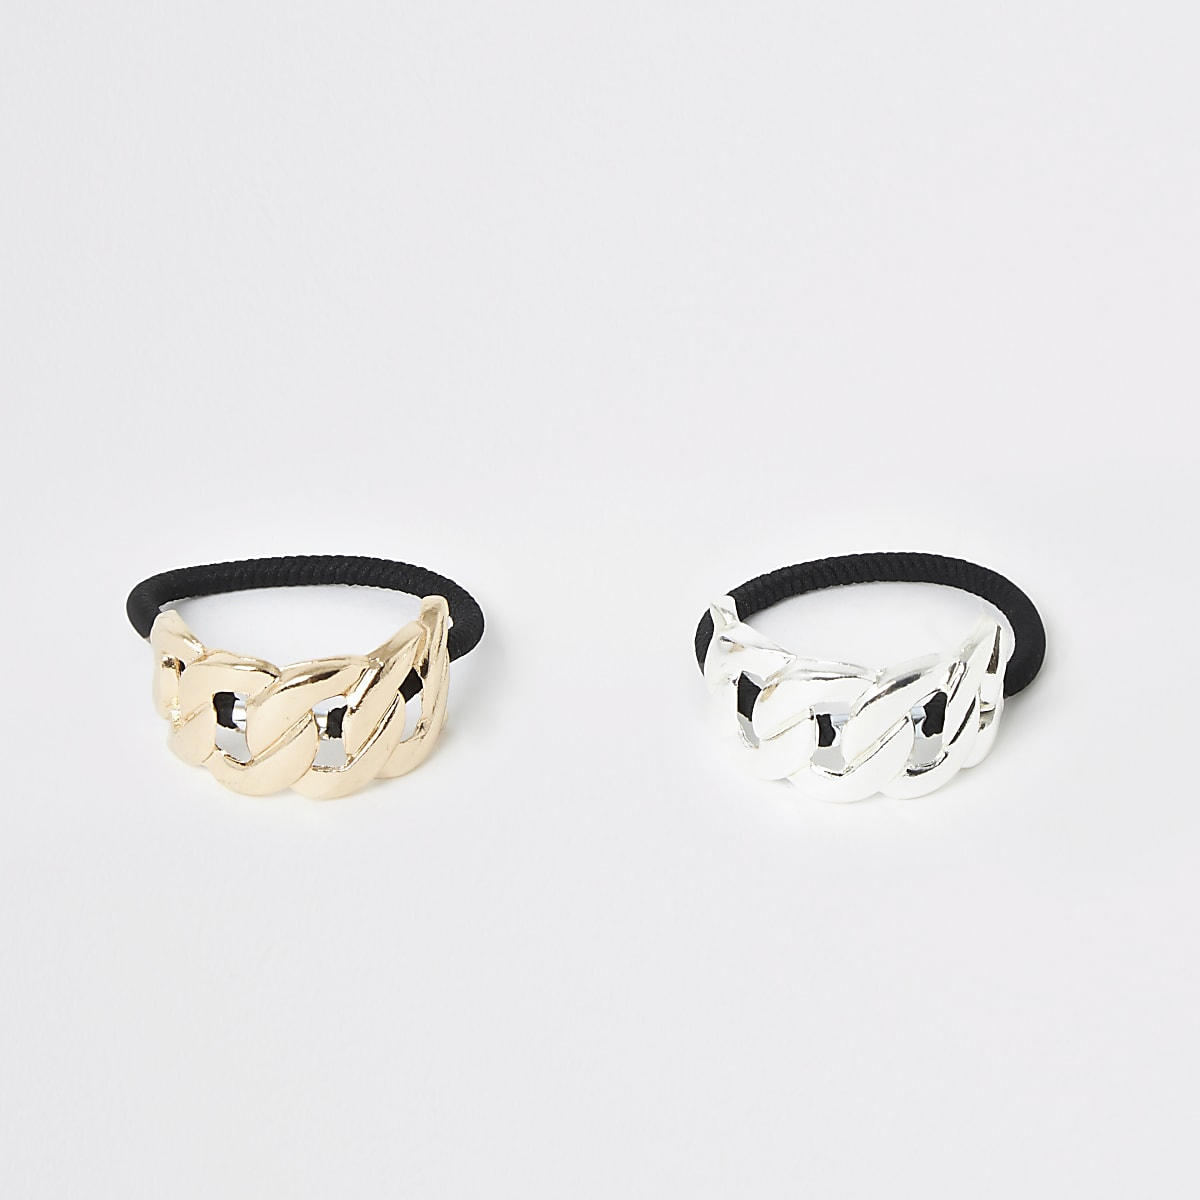 Gold silver color curb hair tie multipack